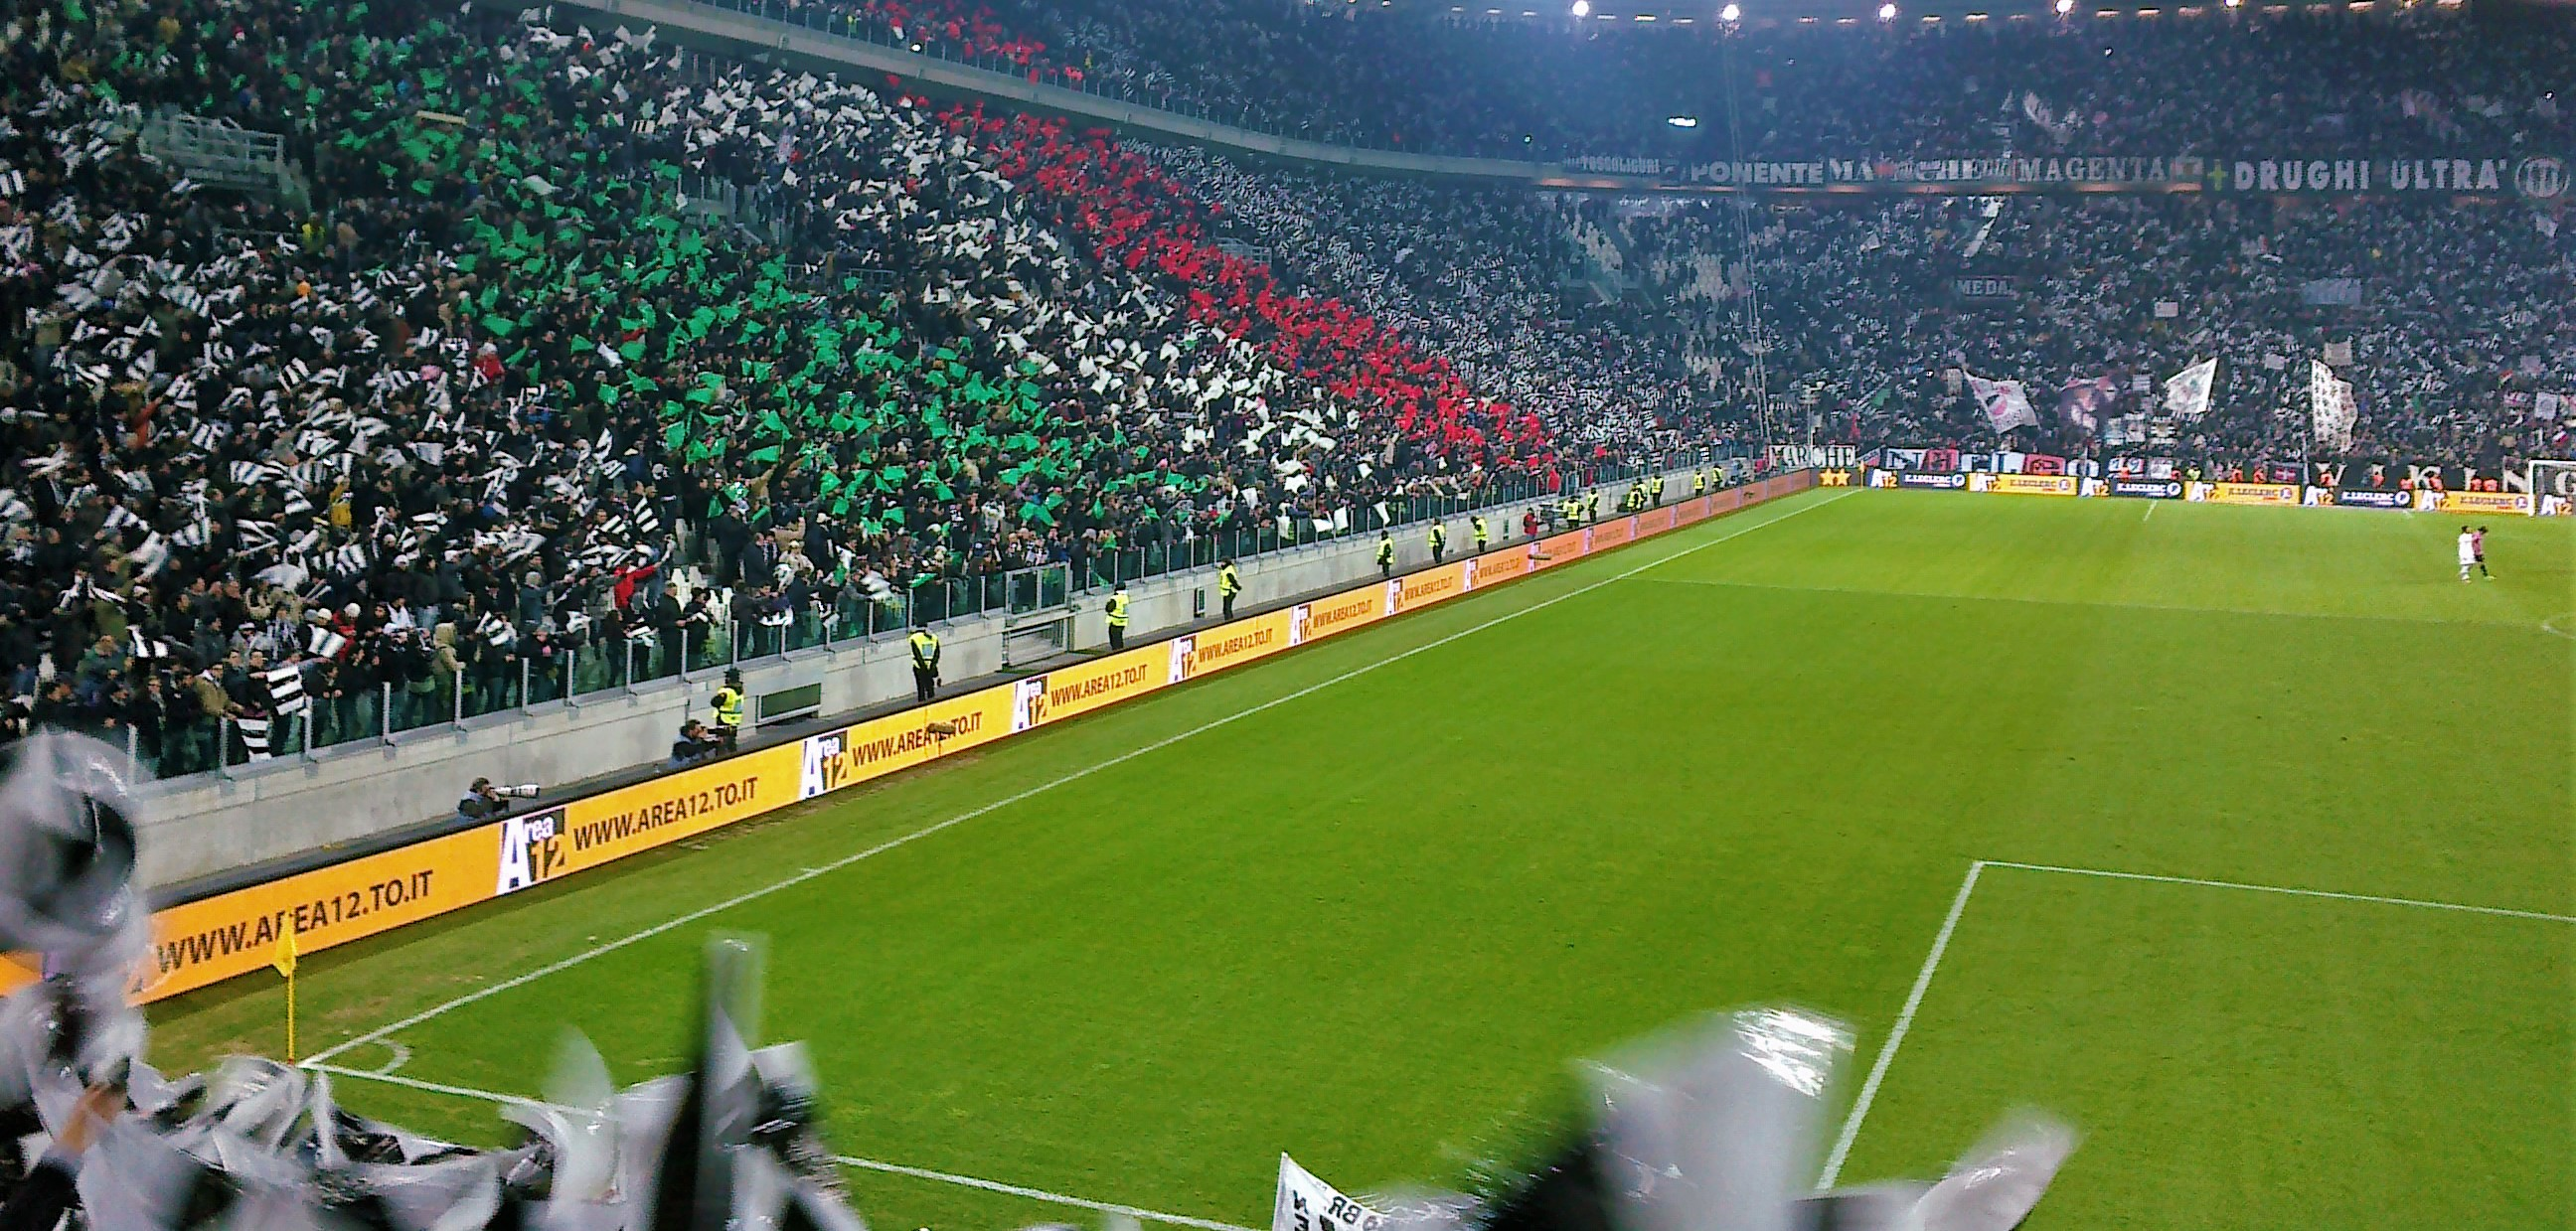 Visiting Juventus Stadium, one of the best things to do in Turin